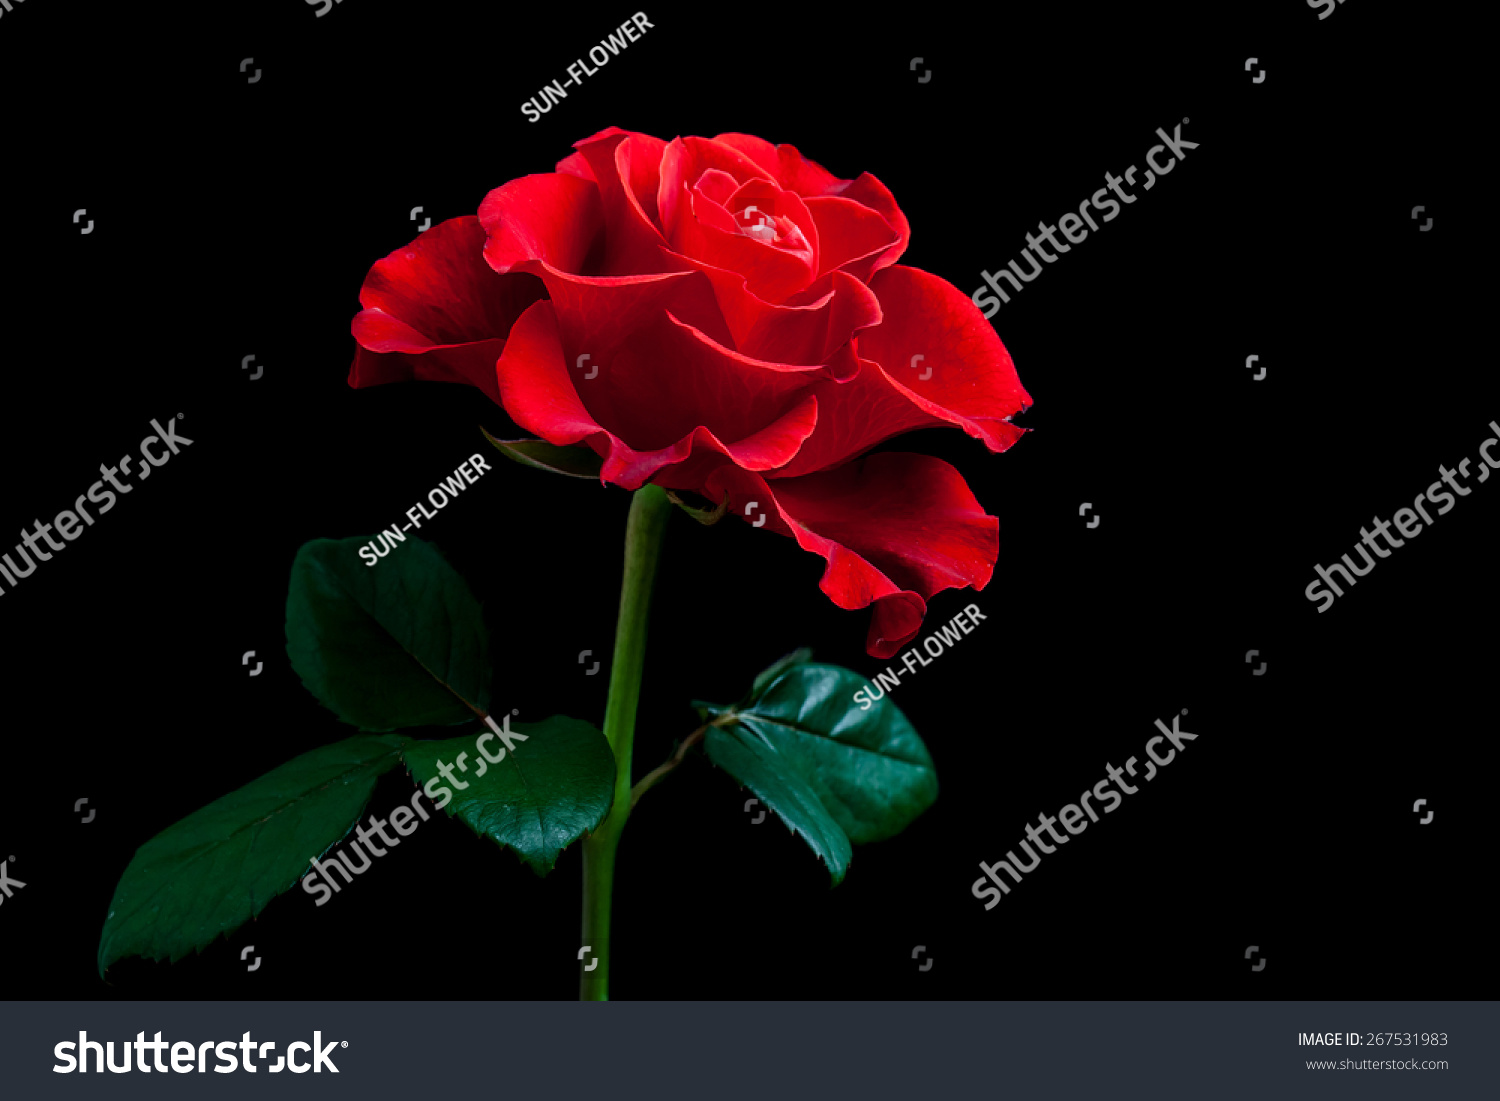 Beautiful Red Rose On Black Background Amazing Flower Wallpaper Image For Mobile Devices